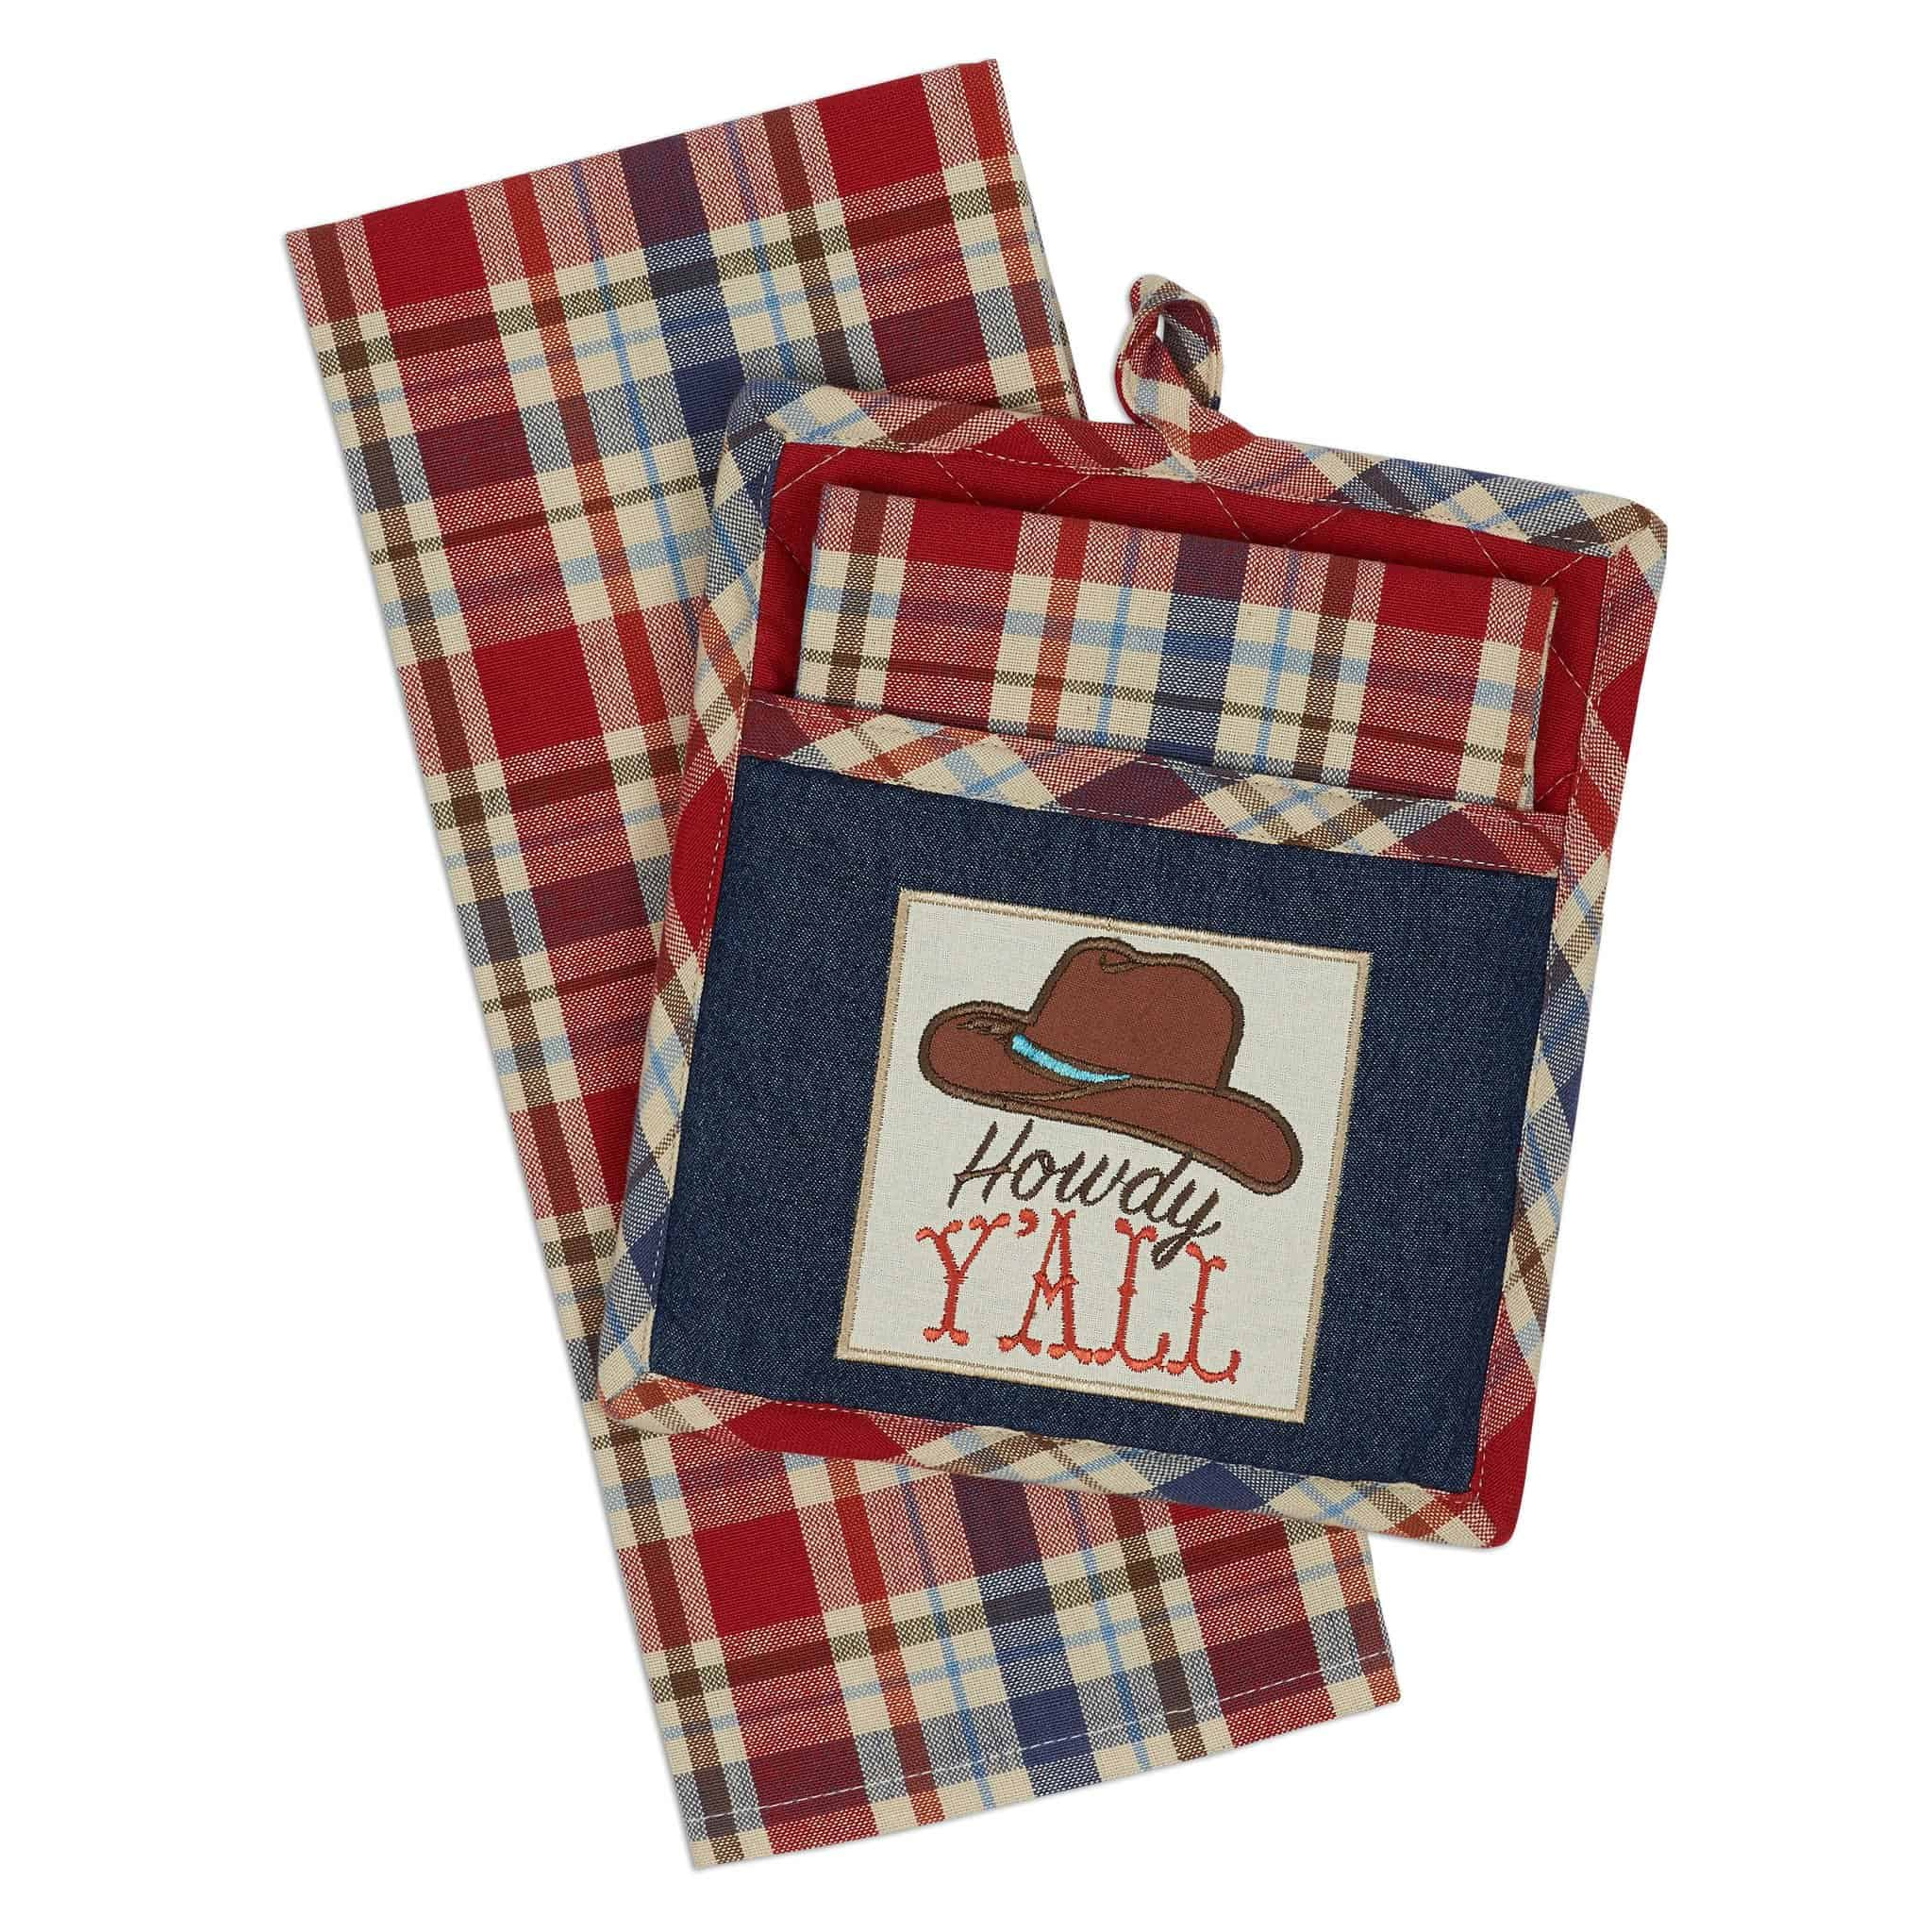 Willhowdy Home: Howdy Yall Potholder Gift Set